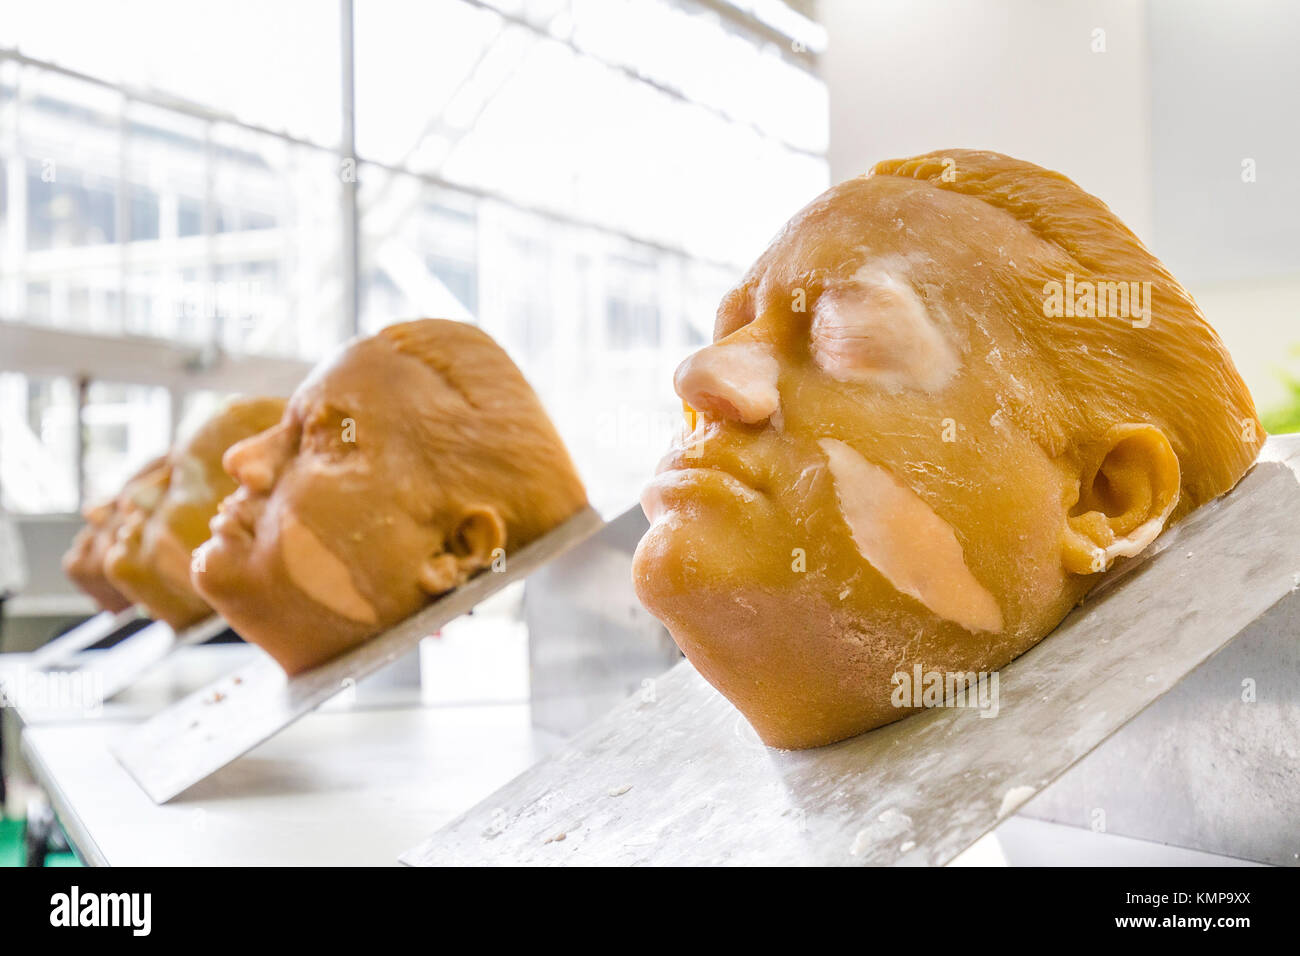 Bologna, BO, Italy - April 3, 2016: Dummies used for the surgical simulations are exposed during the tanexpo 2016 Stock Photo